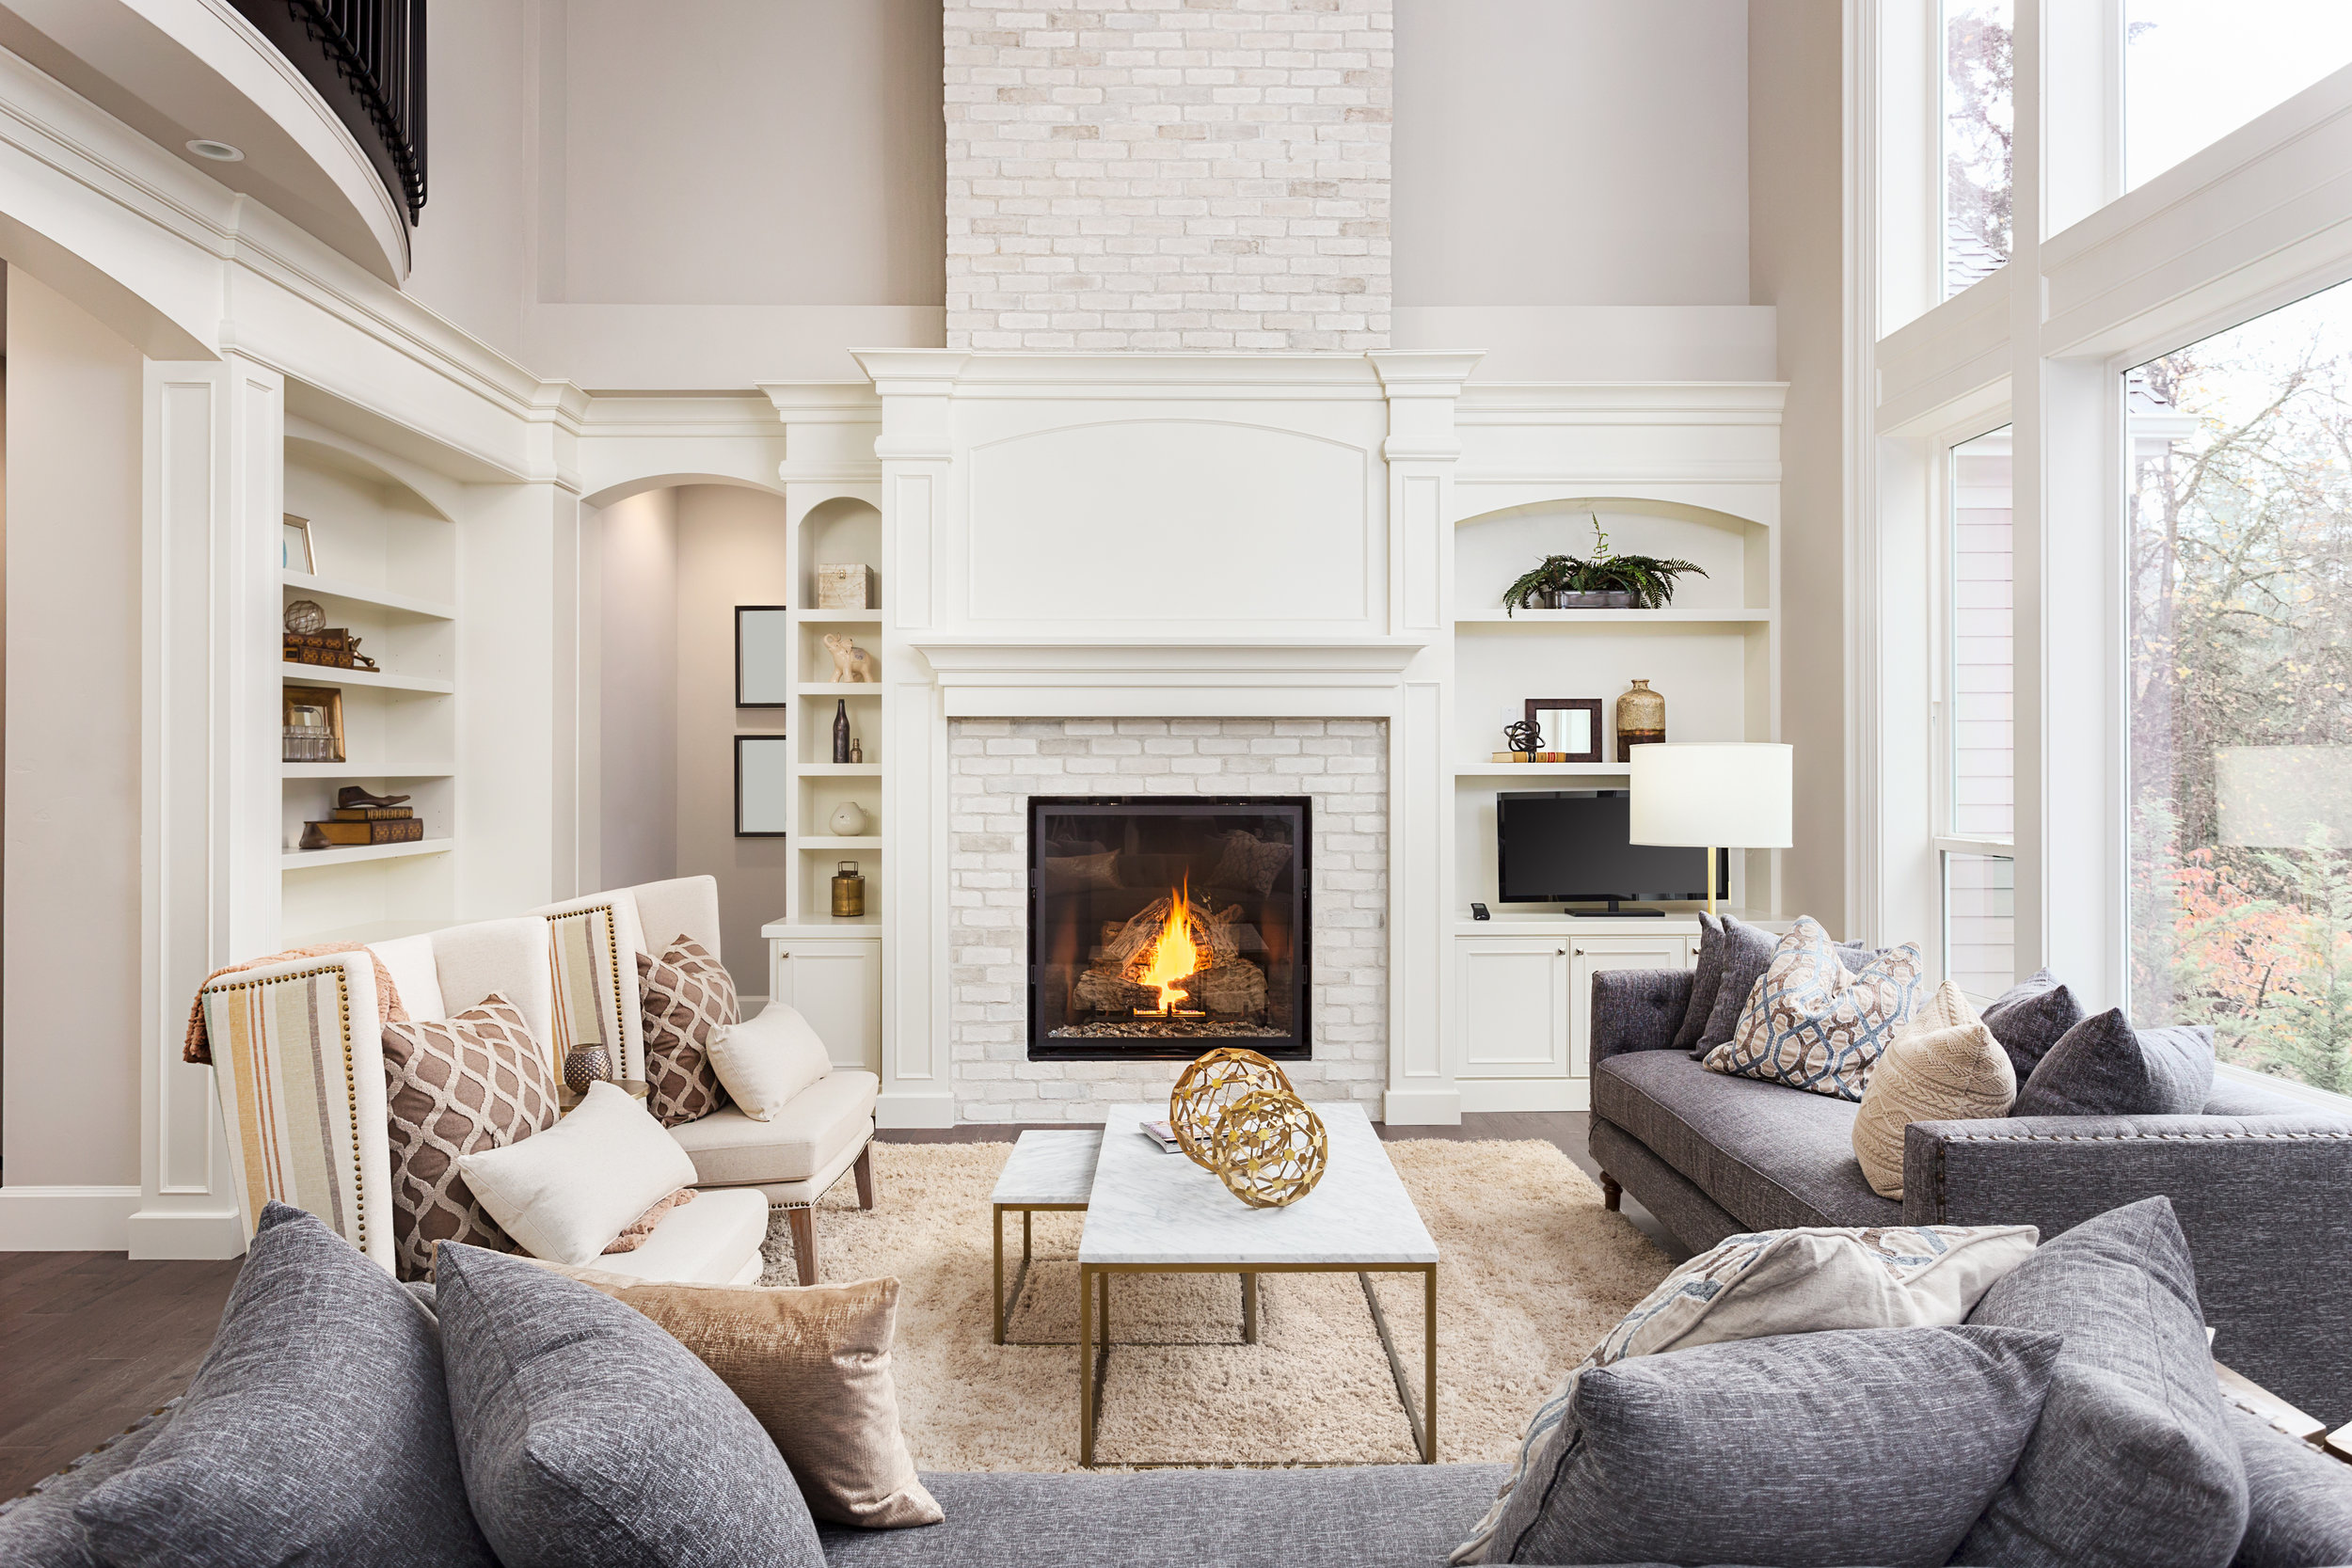 Beautiful Living Room in New Luxury Home with Fireplace and Roaring Fire. Large Bank of Windows Hints at Exterior View